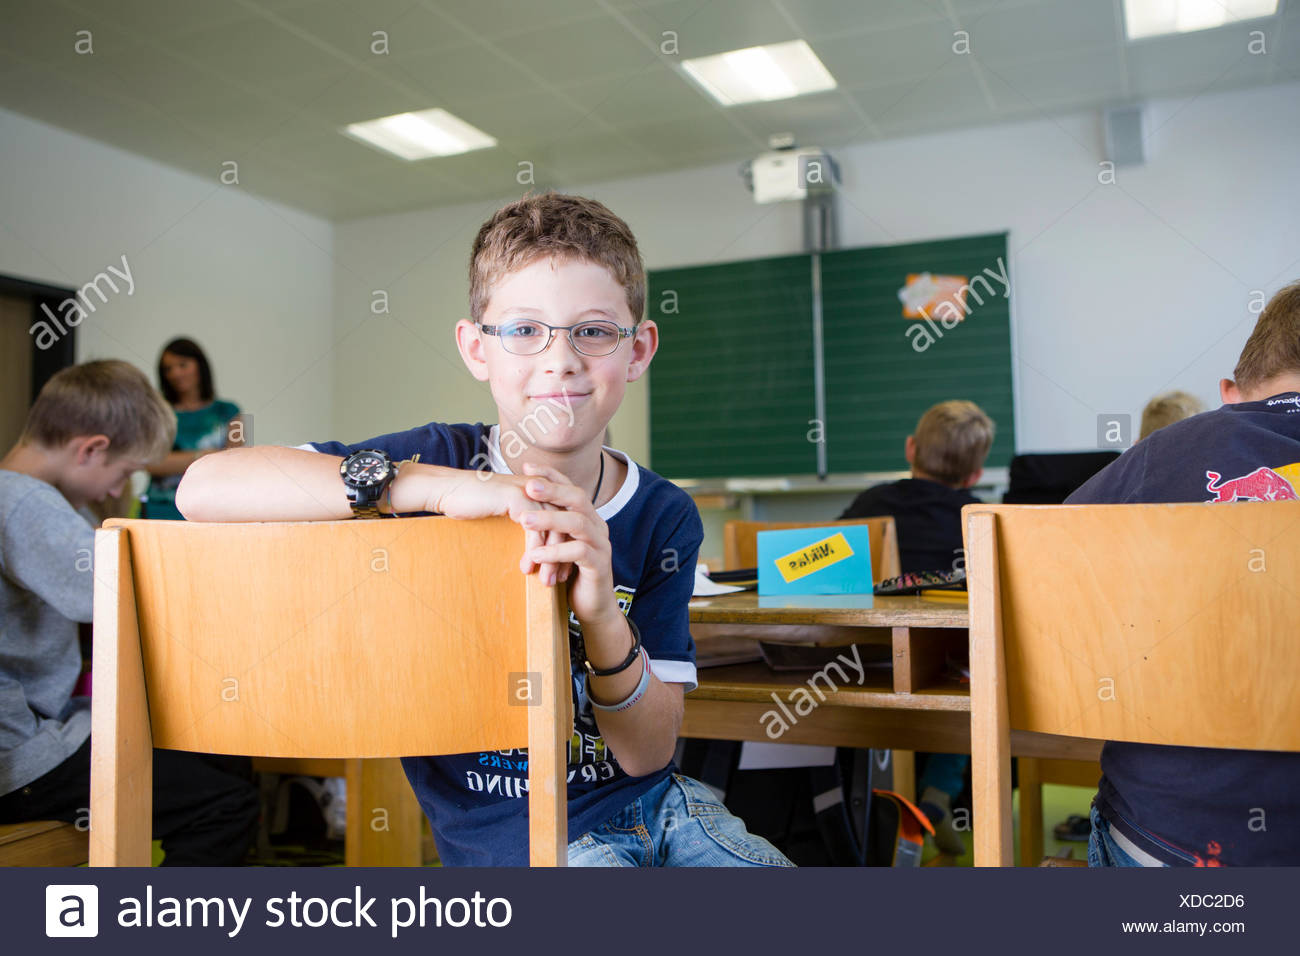 Boy in an elementary school class, Reith im Alpbachtal, Kufstein district, Tyrol, Austria - Stock Image